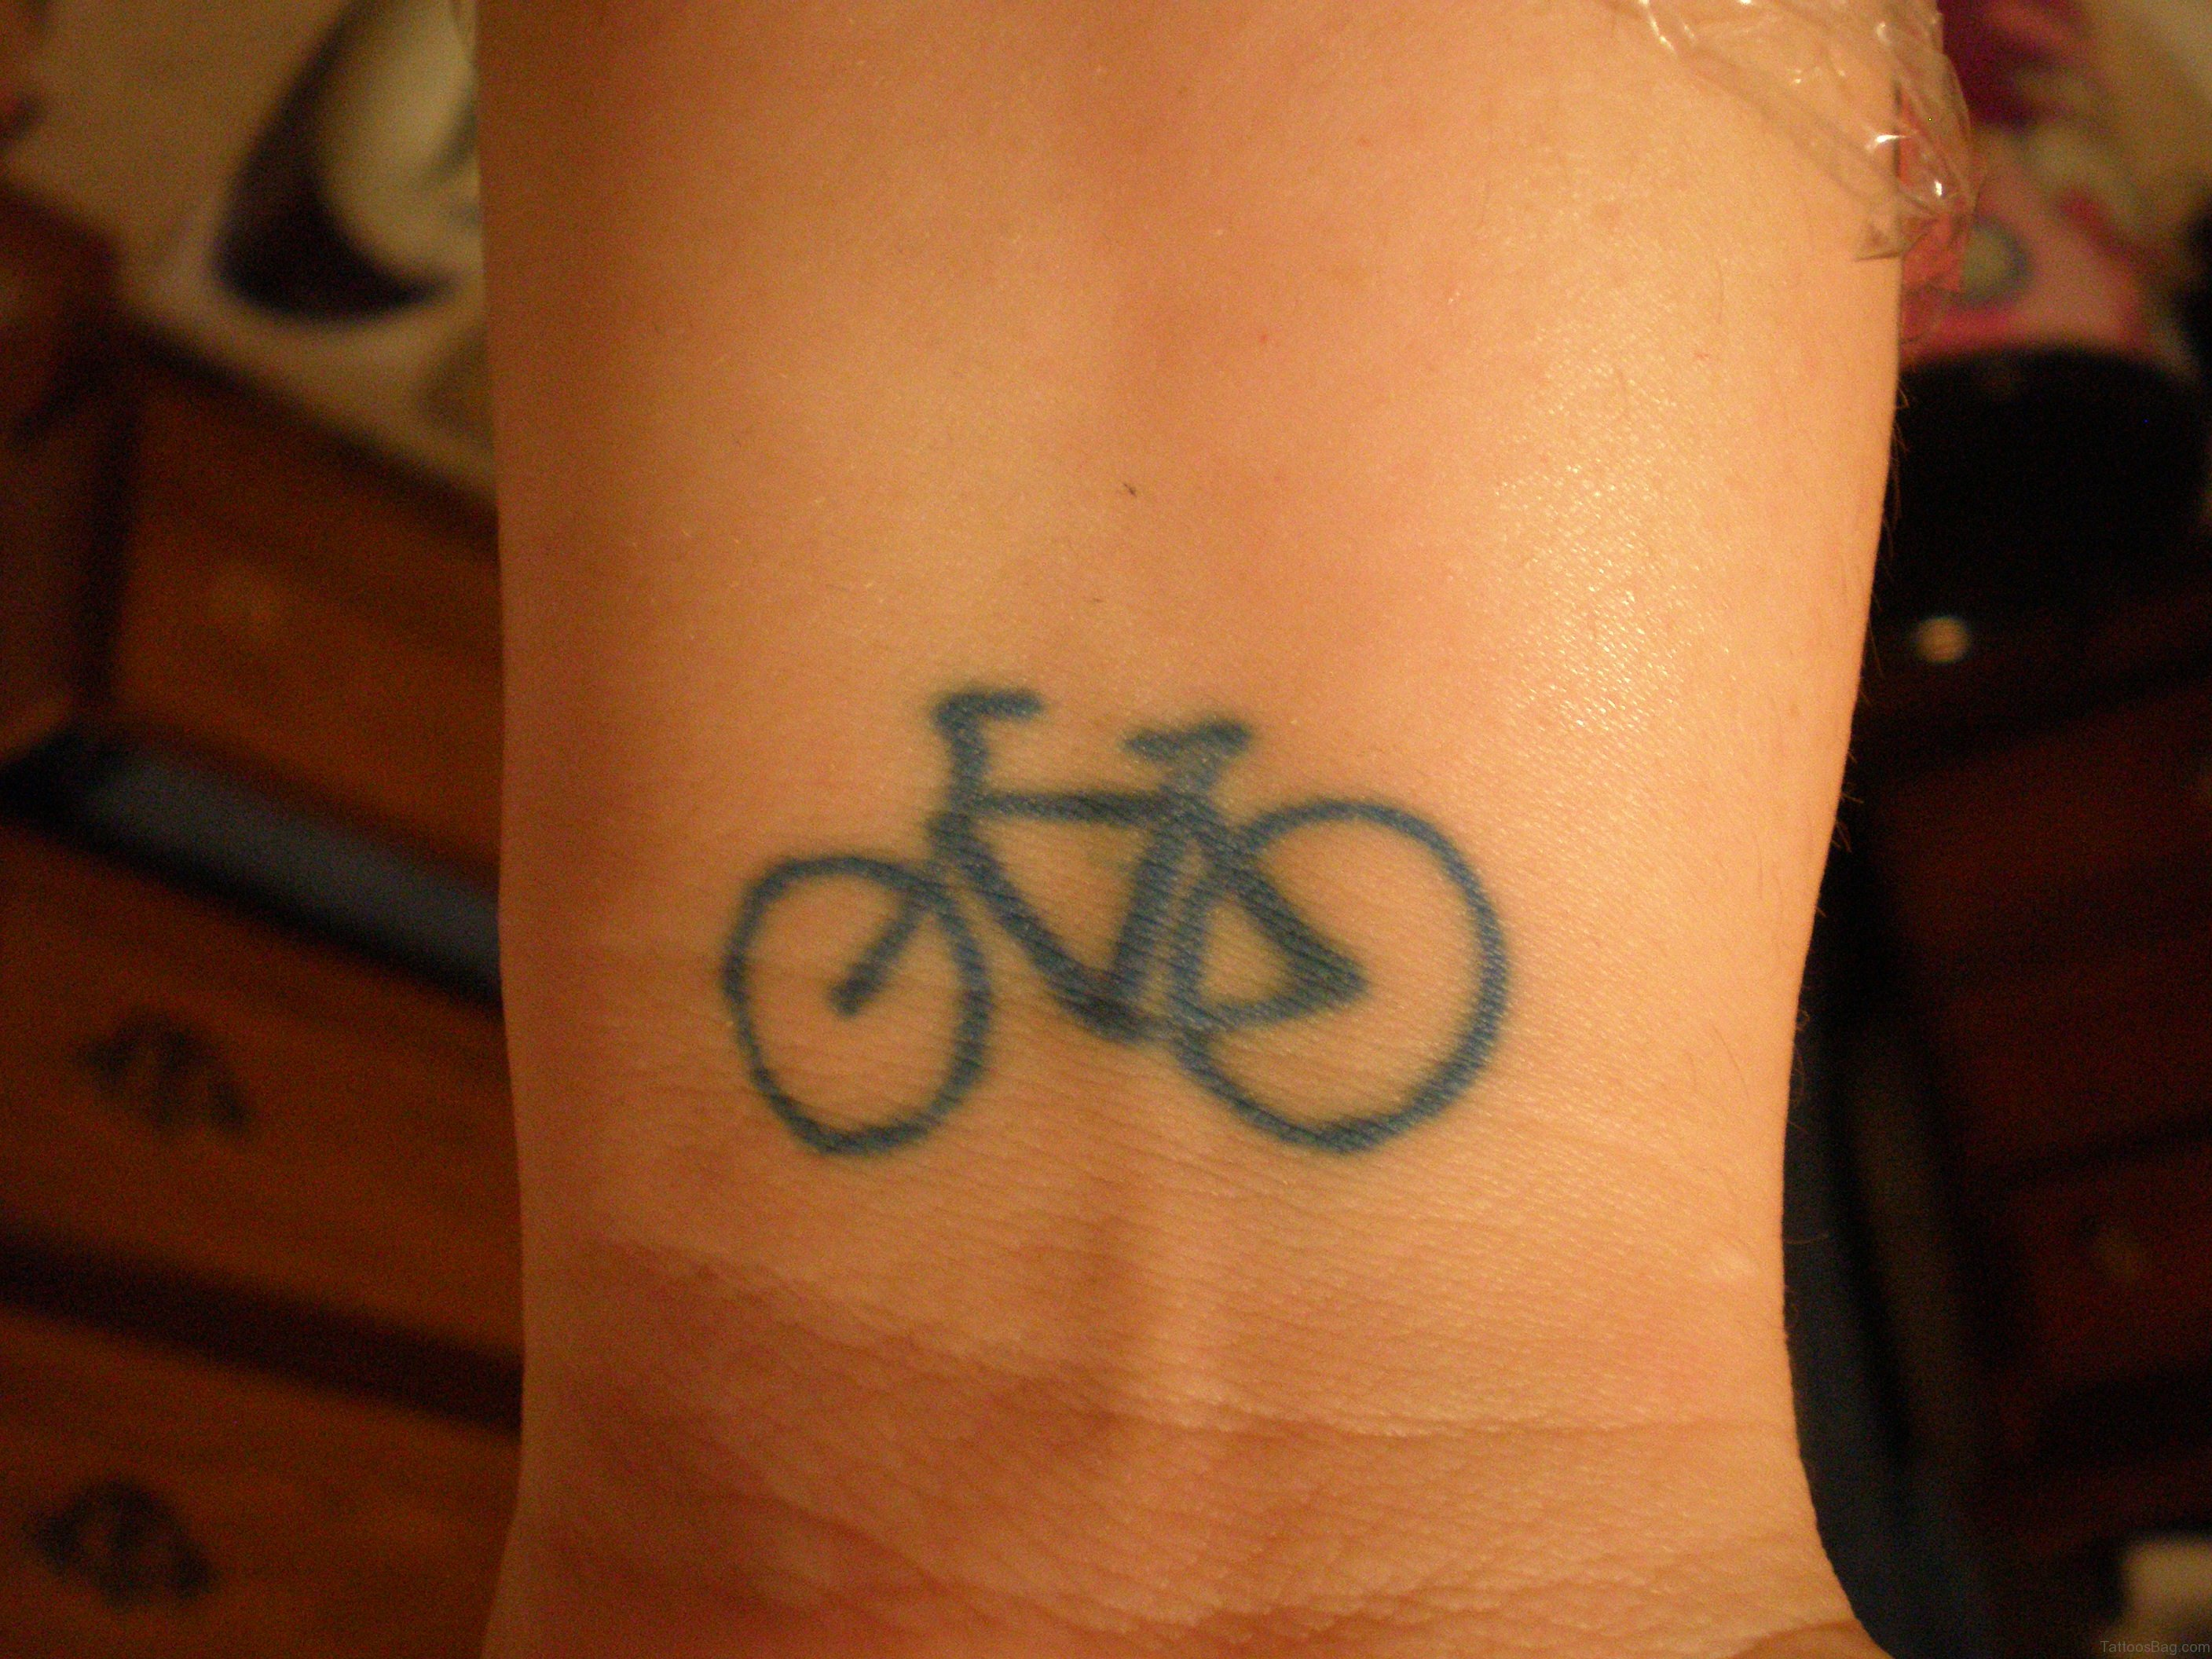 26 wonderful bike tattoos on wrist. Black Bedroom Furniture Sets. Home Design Ideas